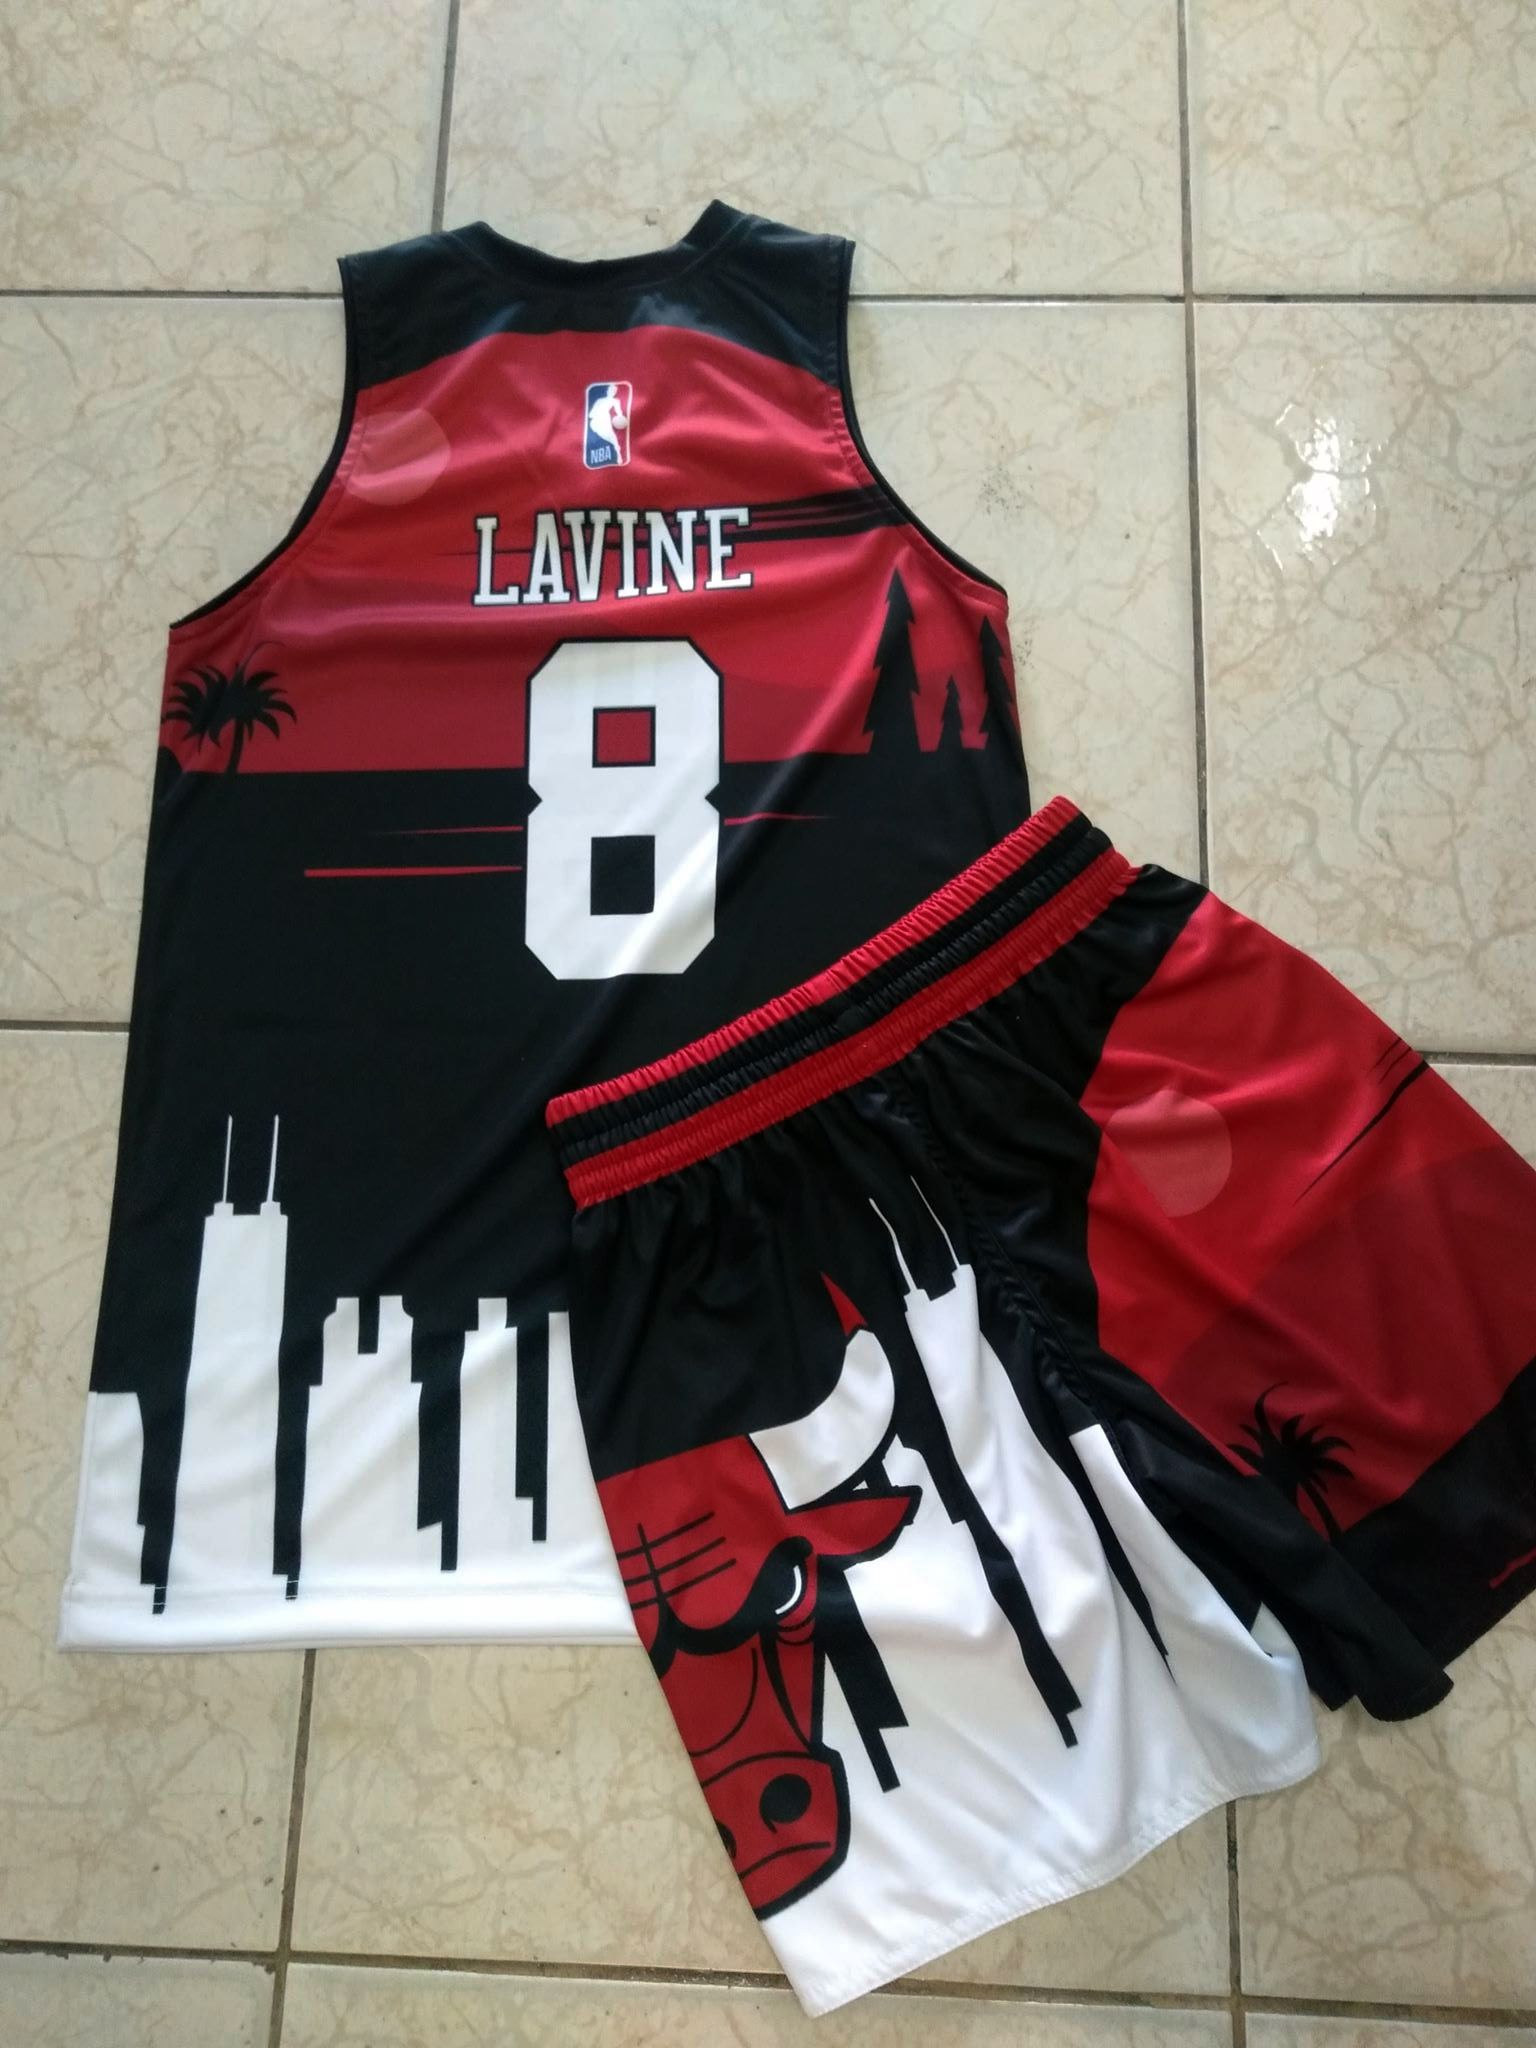 Chicago Bulls Latest Basketball Jersey In 2020 Jersey Design Basketball Jersey Basketball Uniforms Design